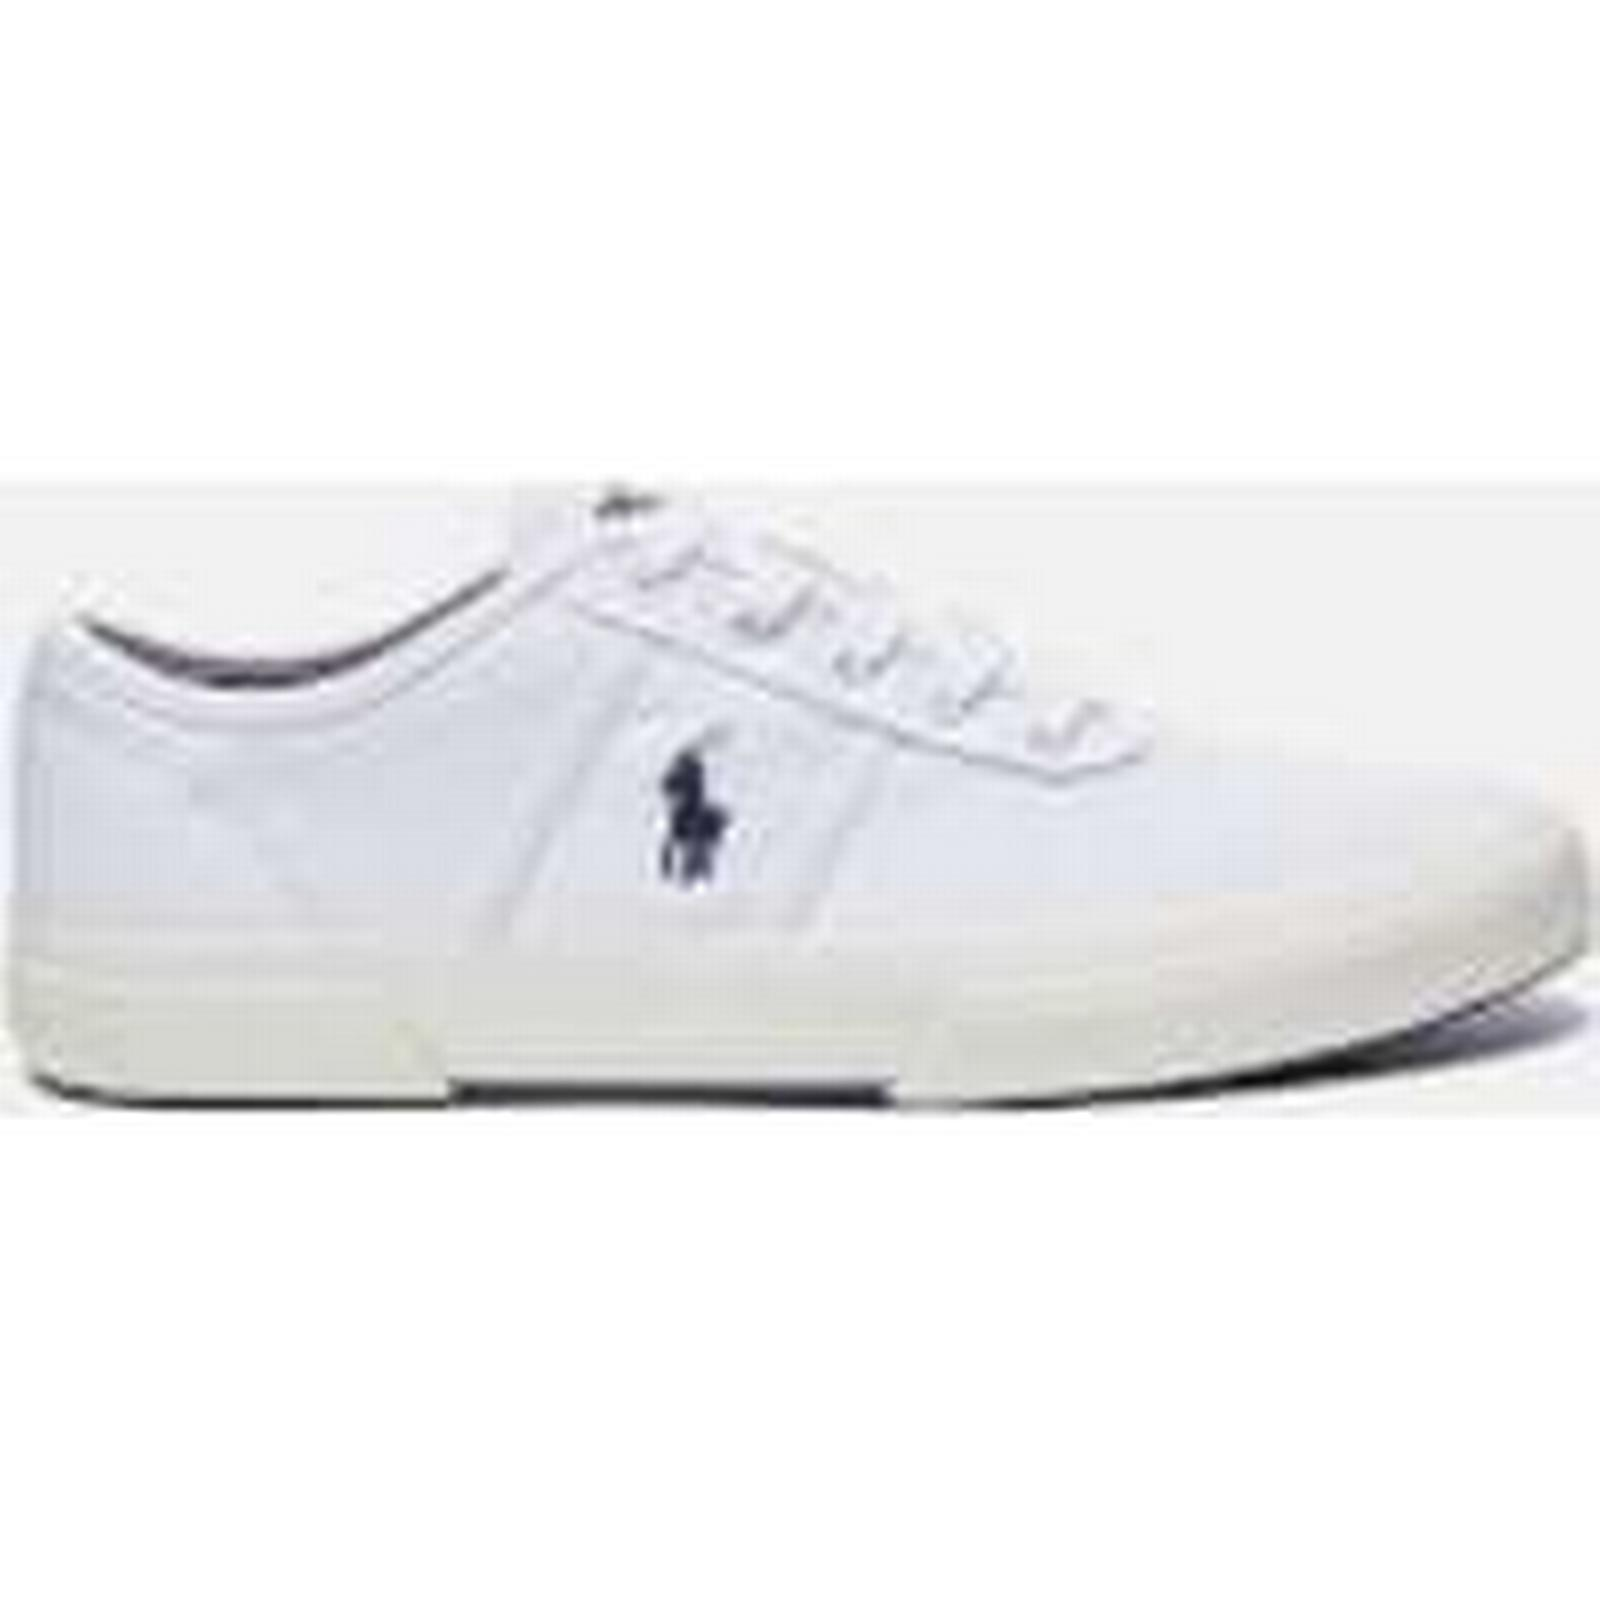 Polo Ralph Lauren Men's Pure Tyrian Canvas Trainers - Pure Men's White - UK 8 - White 9f5d85